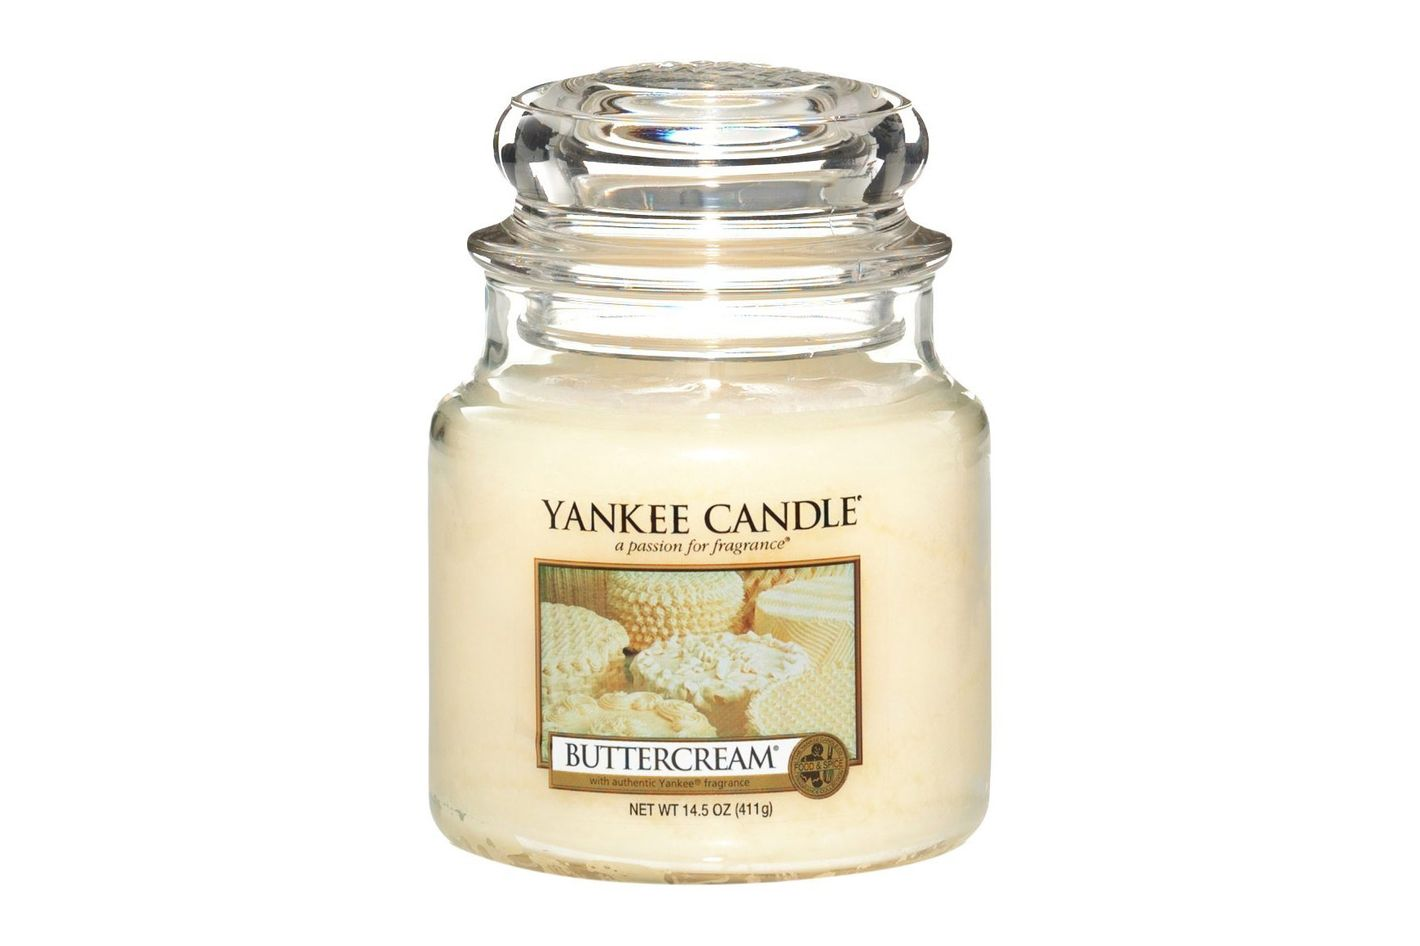 Yankee Candle Buttercream Medium Jar Candles